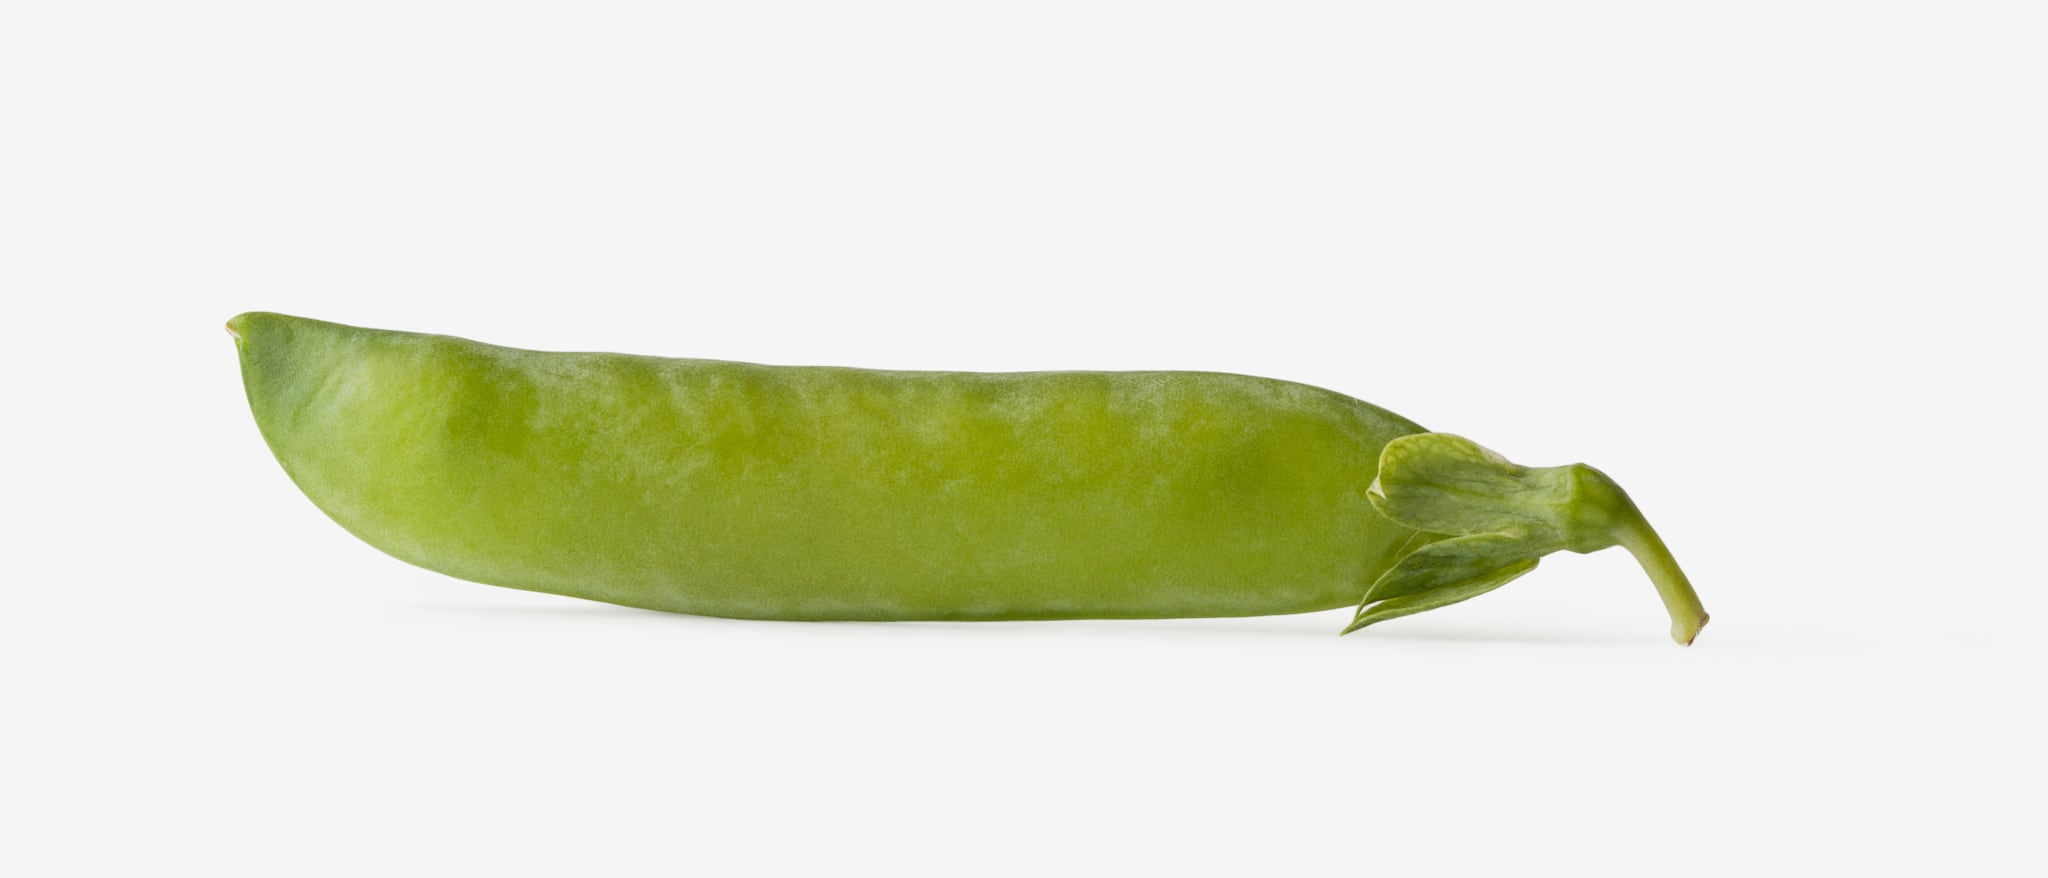 Green pea PSD isolated image